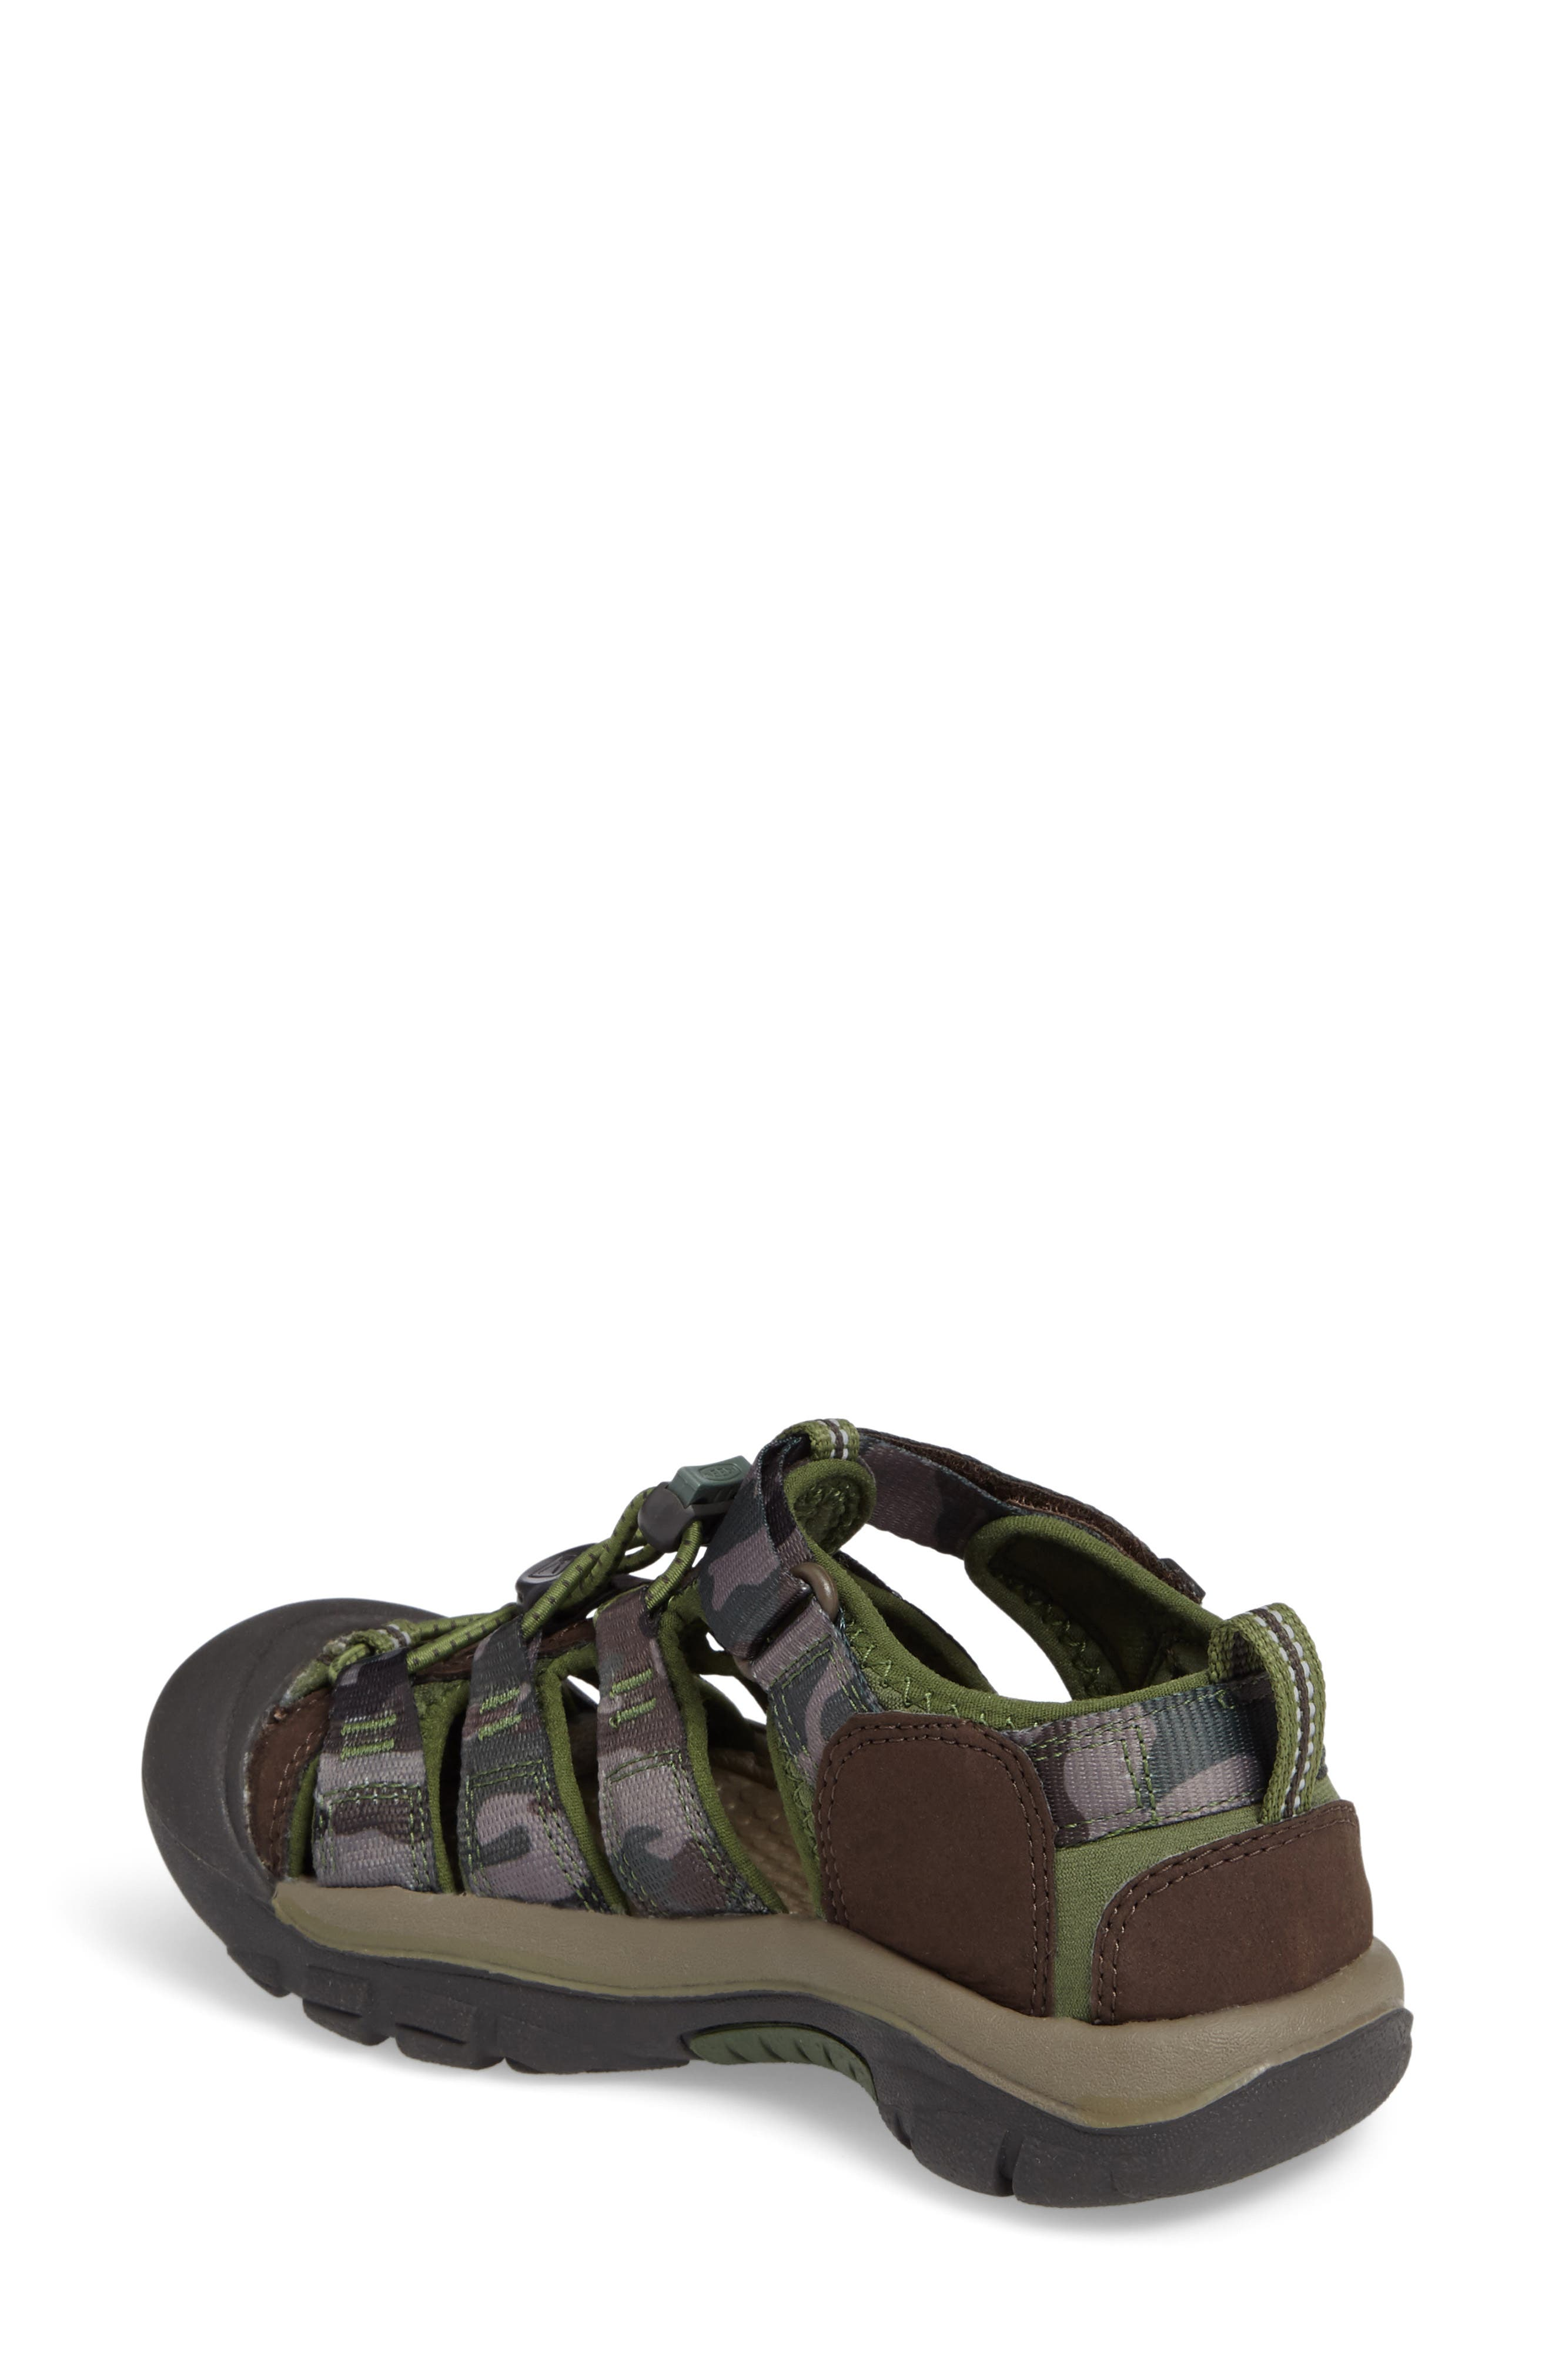 ,                             'Newport H2' Water Friendly Sandal,                             Alternate thumbnail 288, color,                             200